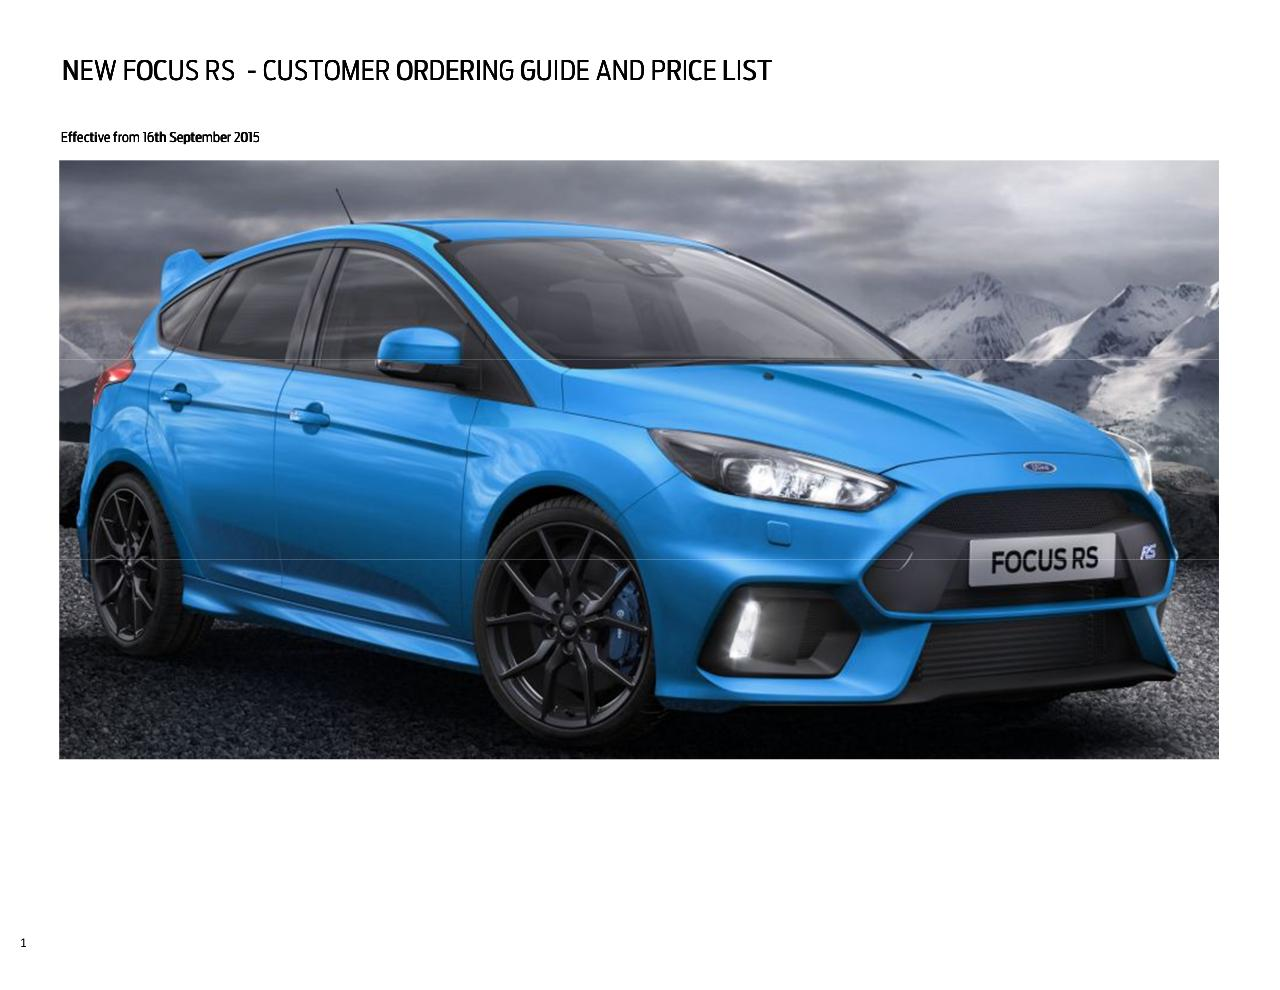 Ford focus rs price list 16th september 2015 pdf page 1 9